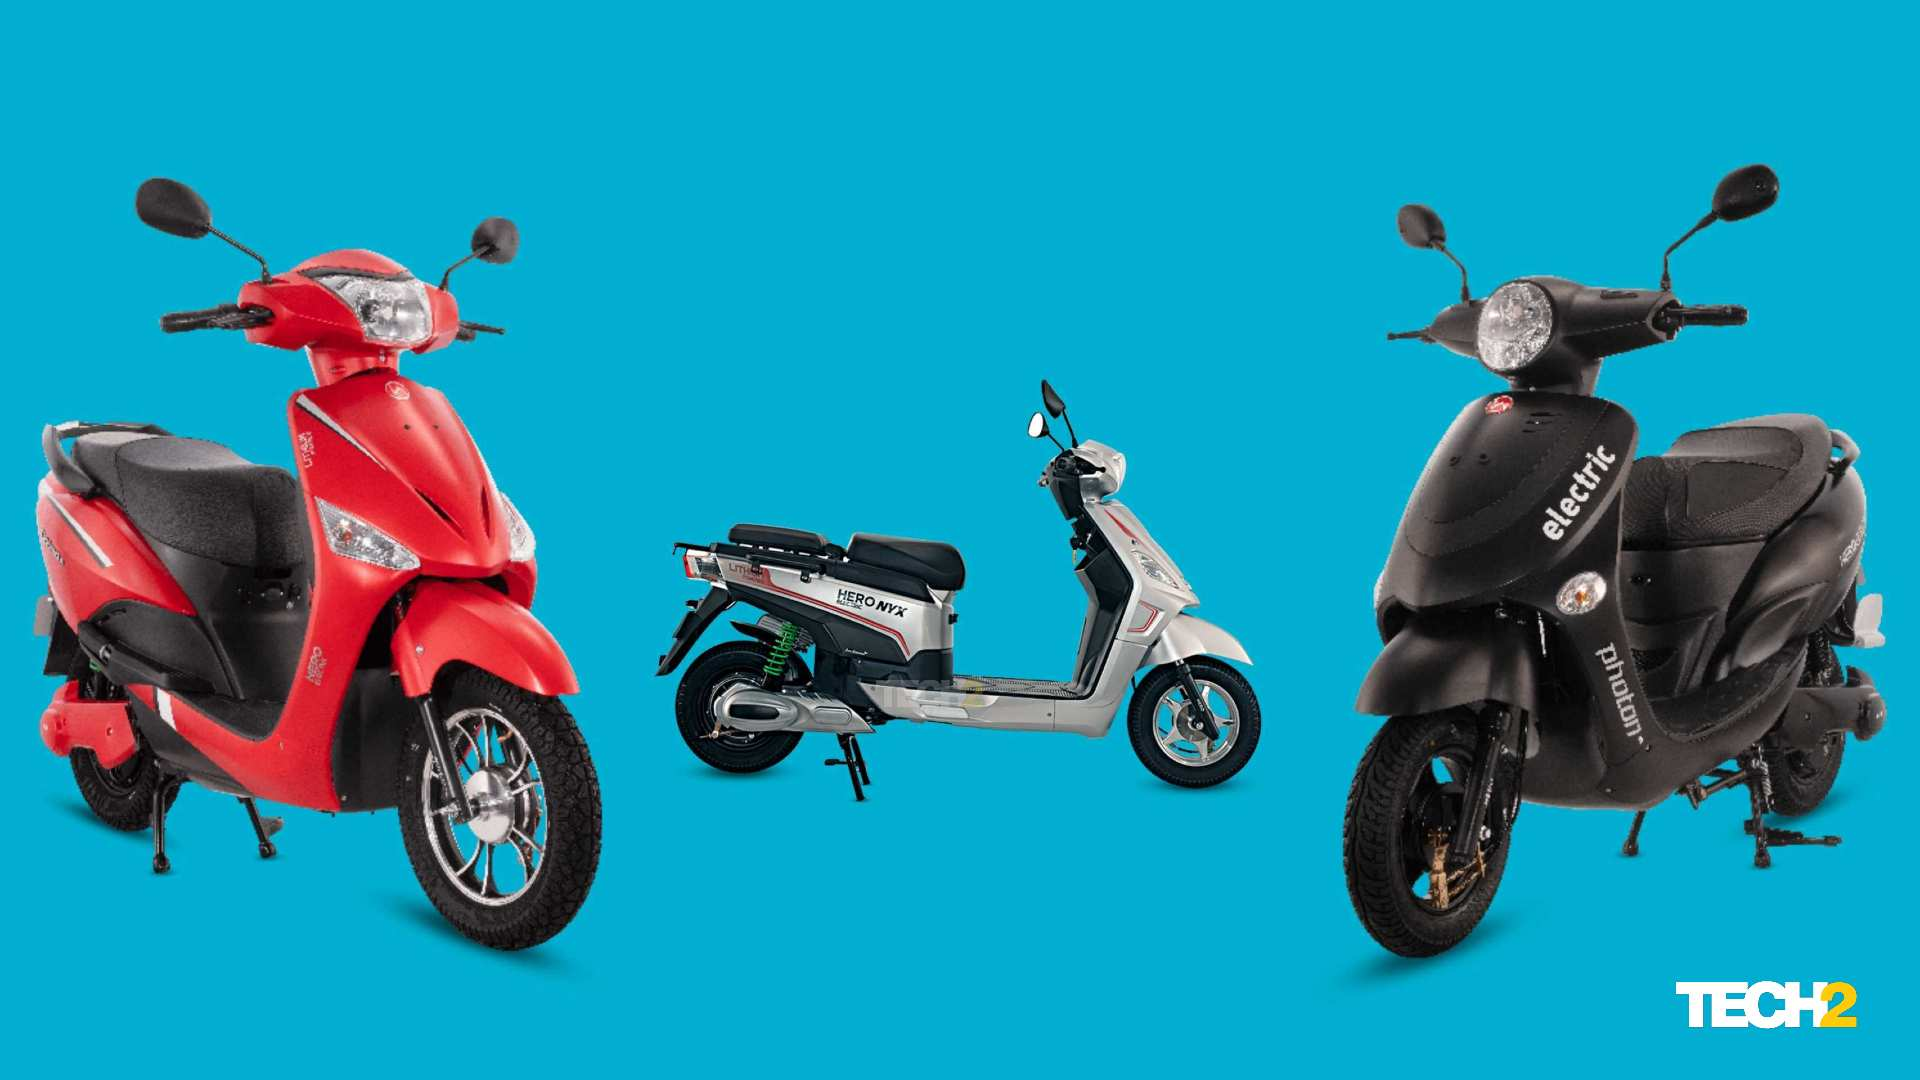 Prices for Hero Electric scooters start at less than 40,000 in Maharashtra and Gujarat - Technology News, Firstpost